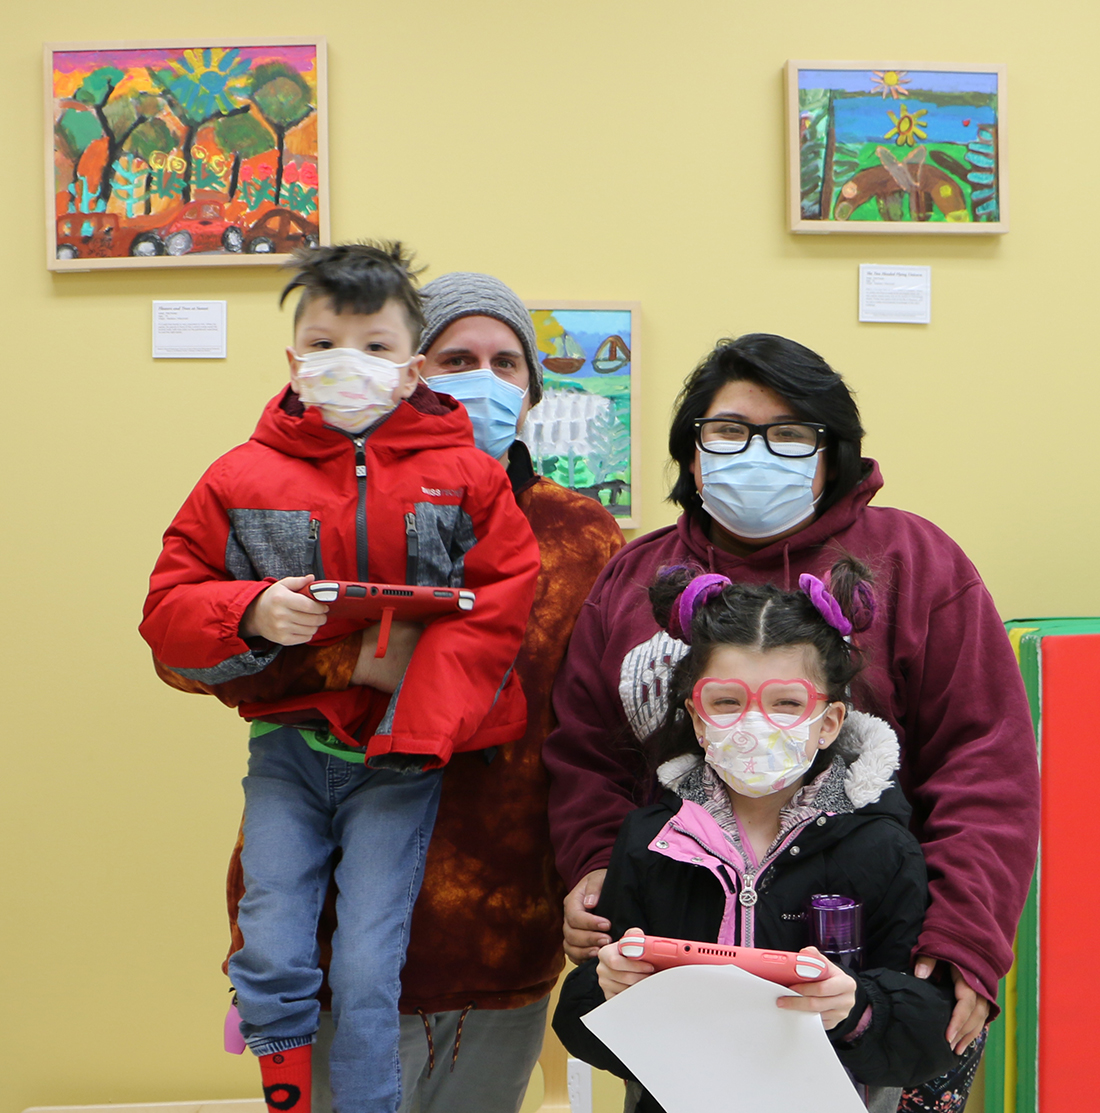 The Sundly Family at Waisman's cerebral palsy clinic. Left to right: Sebastian, Kevin, Kendra and Charlotte (in front).